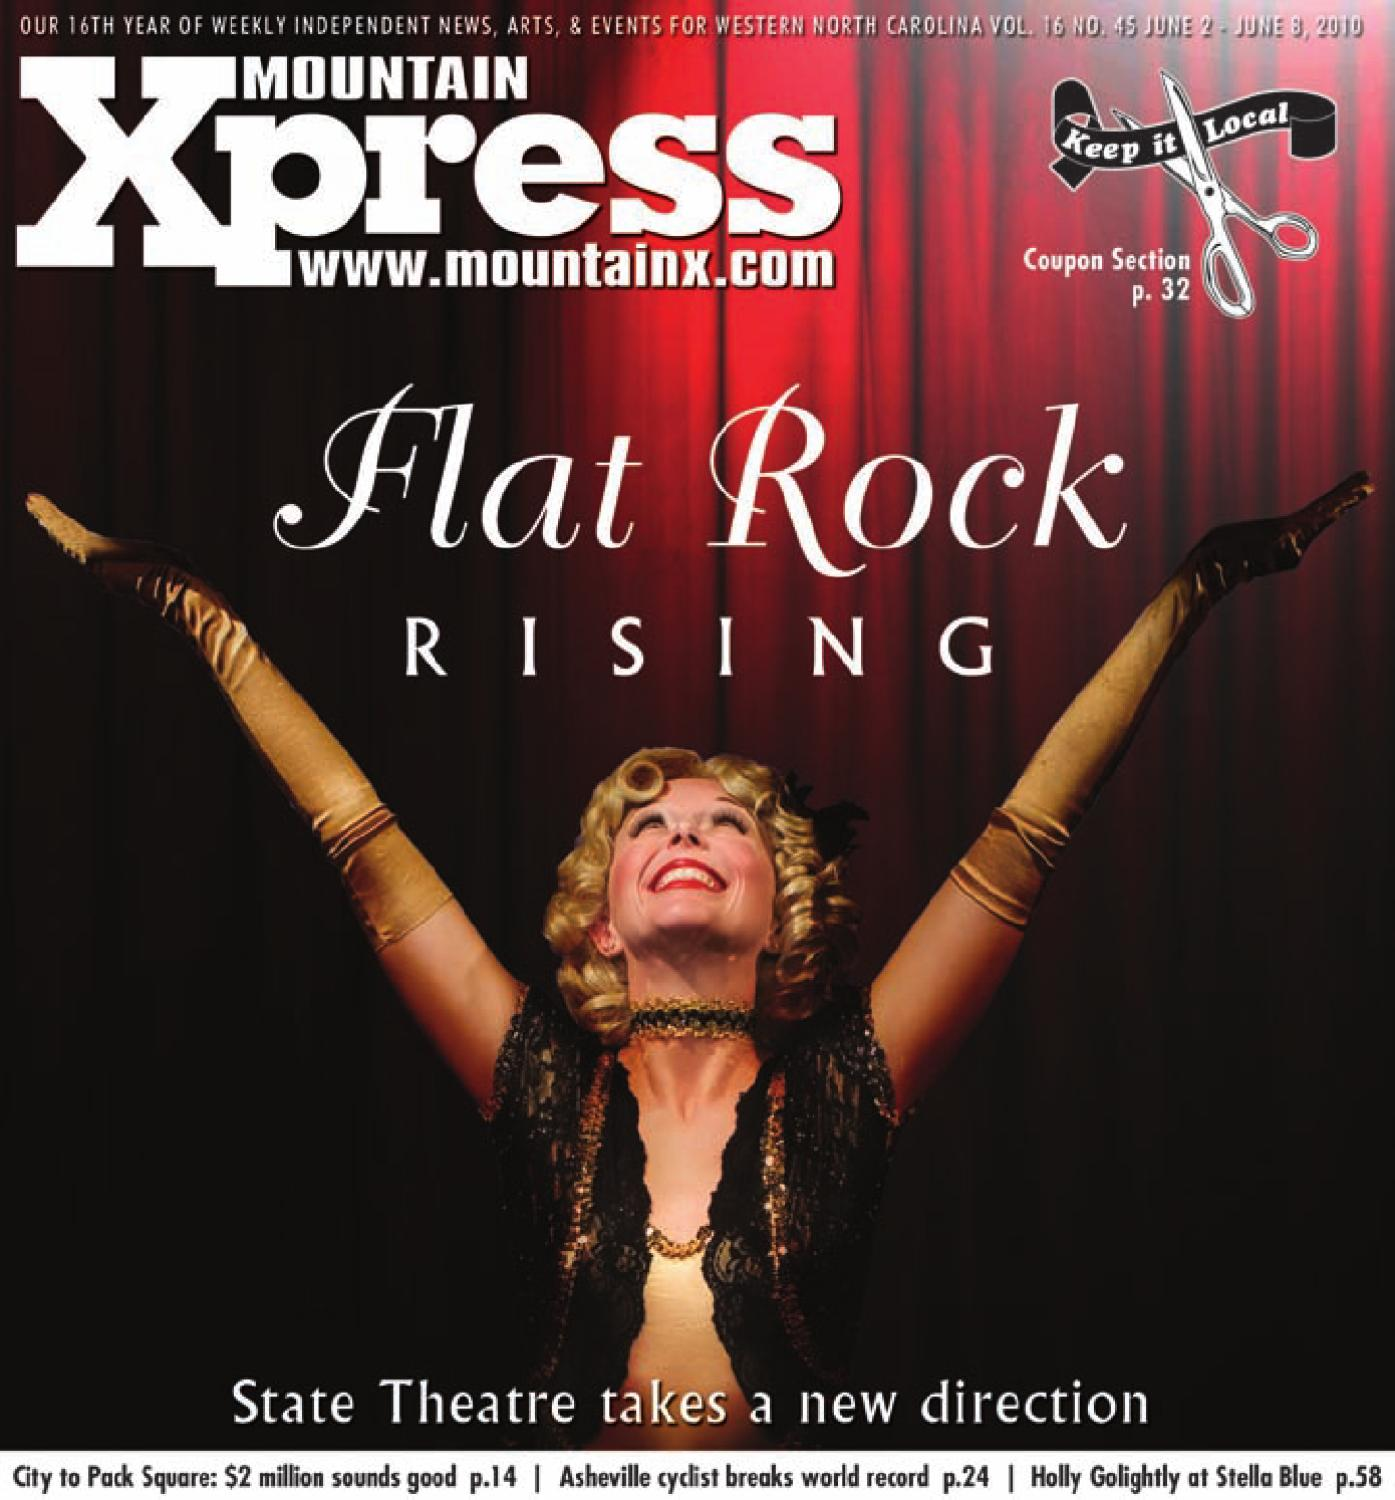 Mountain Xpress, June 02 2010 by Mountain Xpress - issuu on